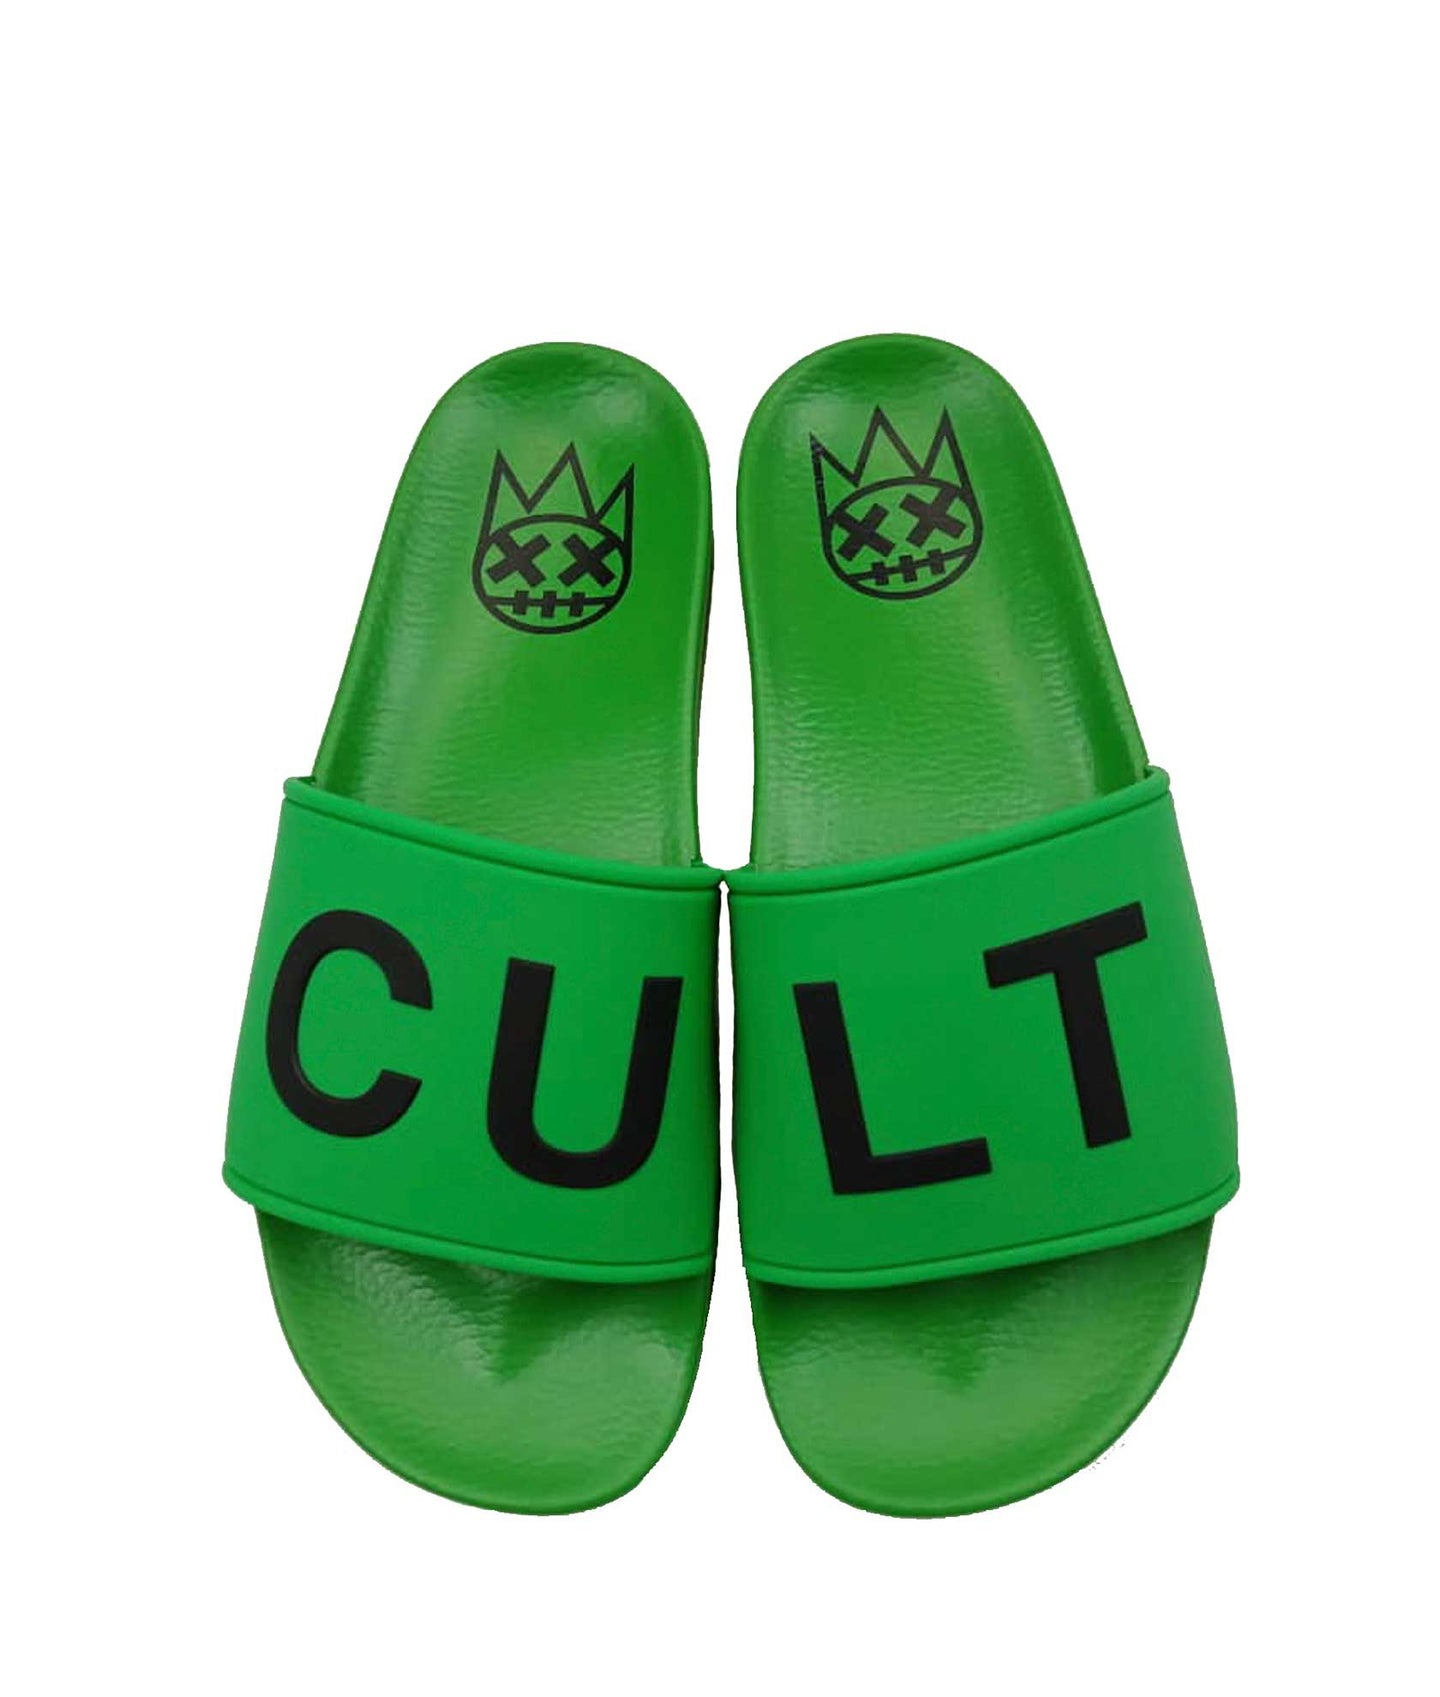 CULT SANDALS IN GREEN